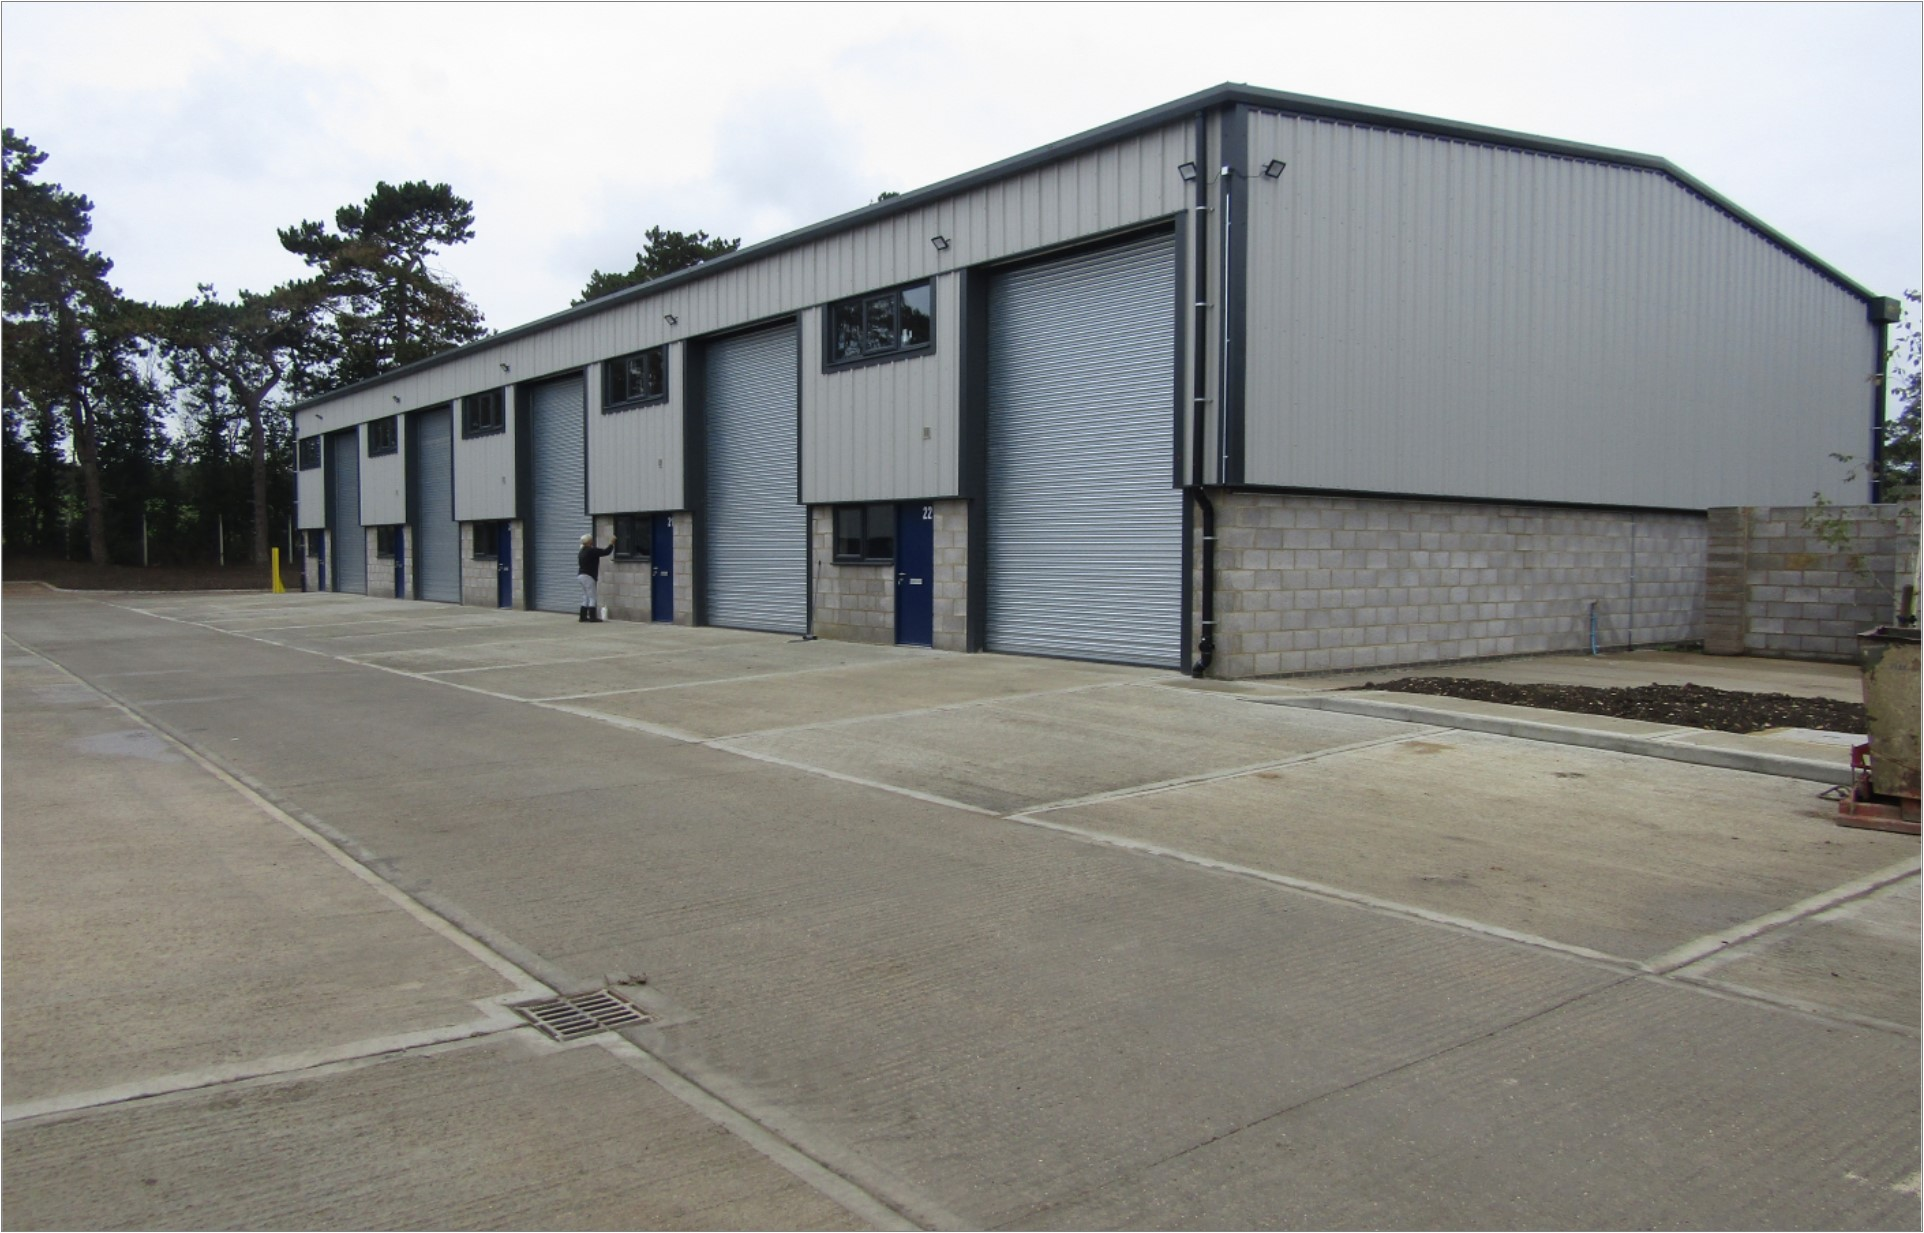 Units 14-16, The Firs, Watermill Industrial Estate, Aspenden Road, Buntingford